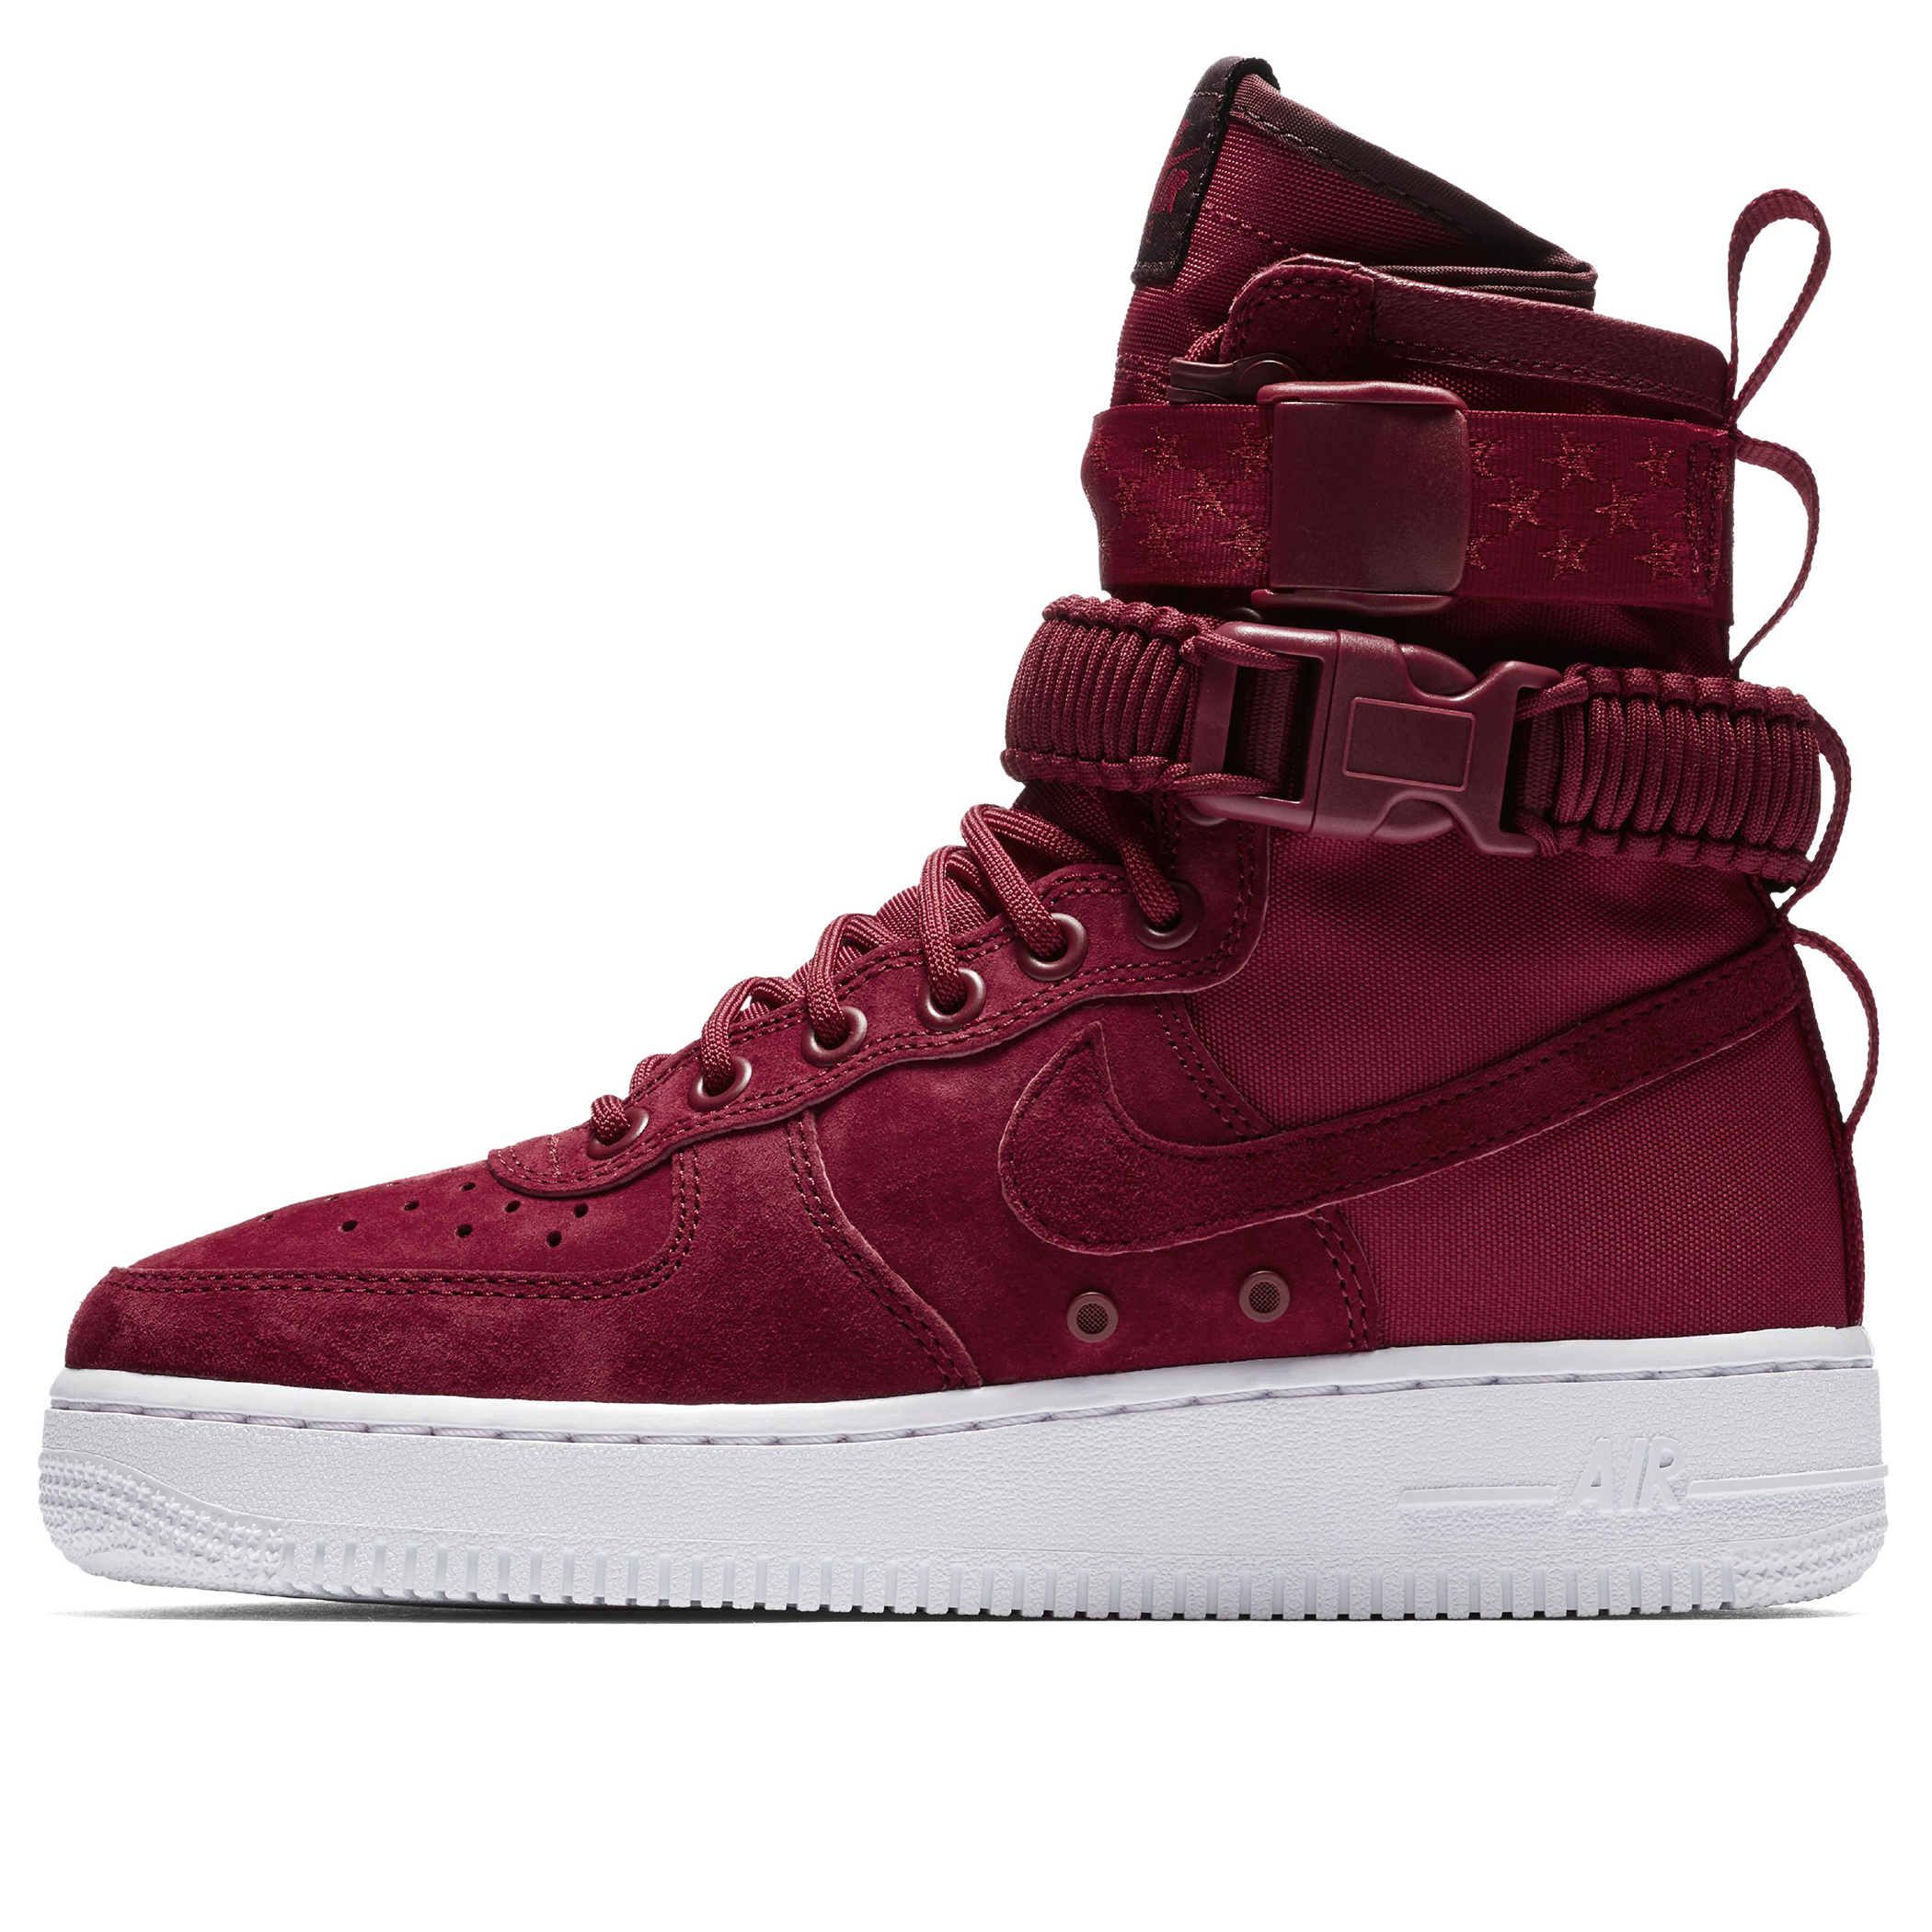 e45bce16 Женские кроссовки Nike SF Air Force 1 Red Crush/Red Crush-White-Burgundy